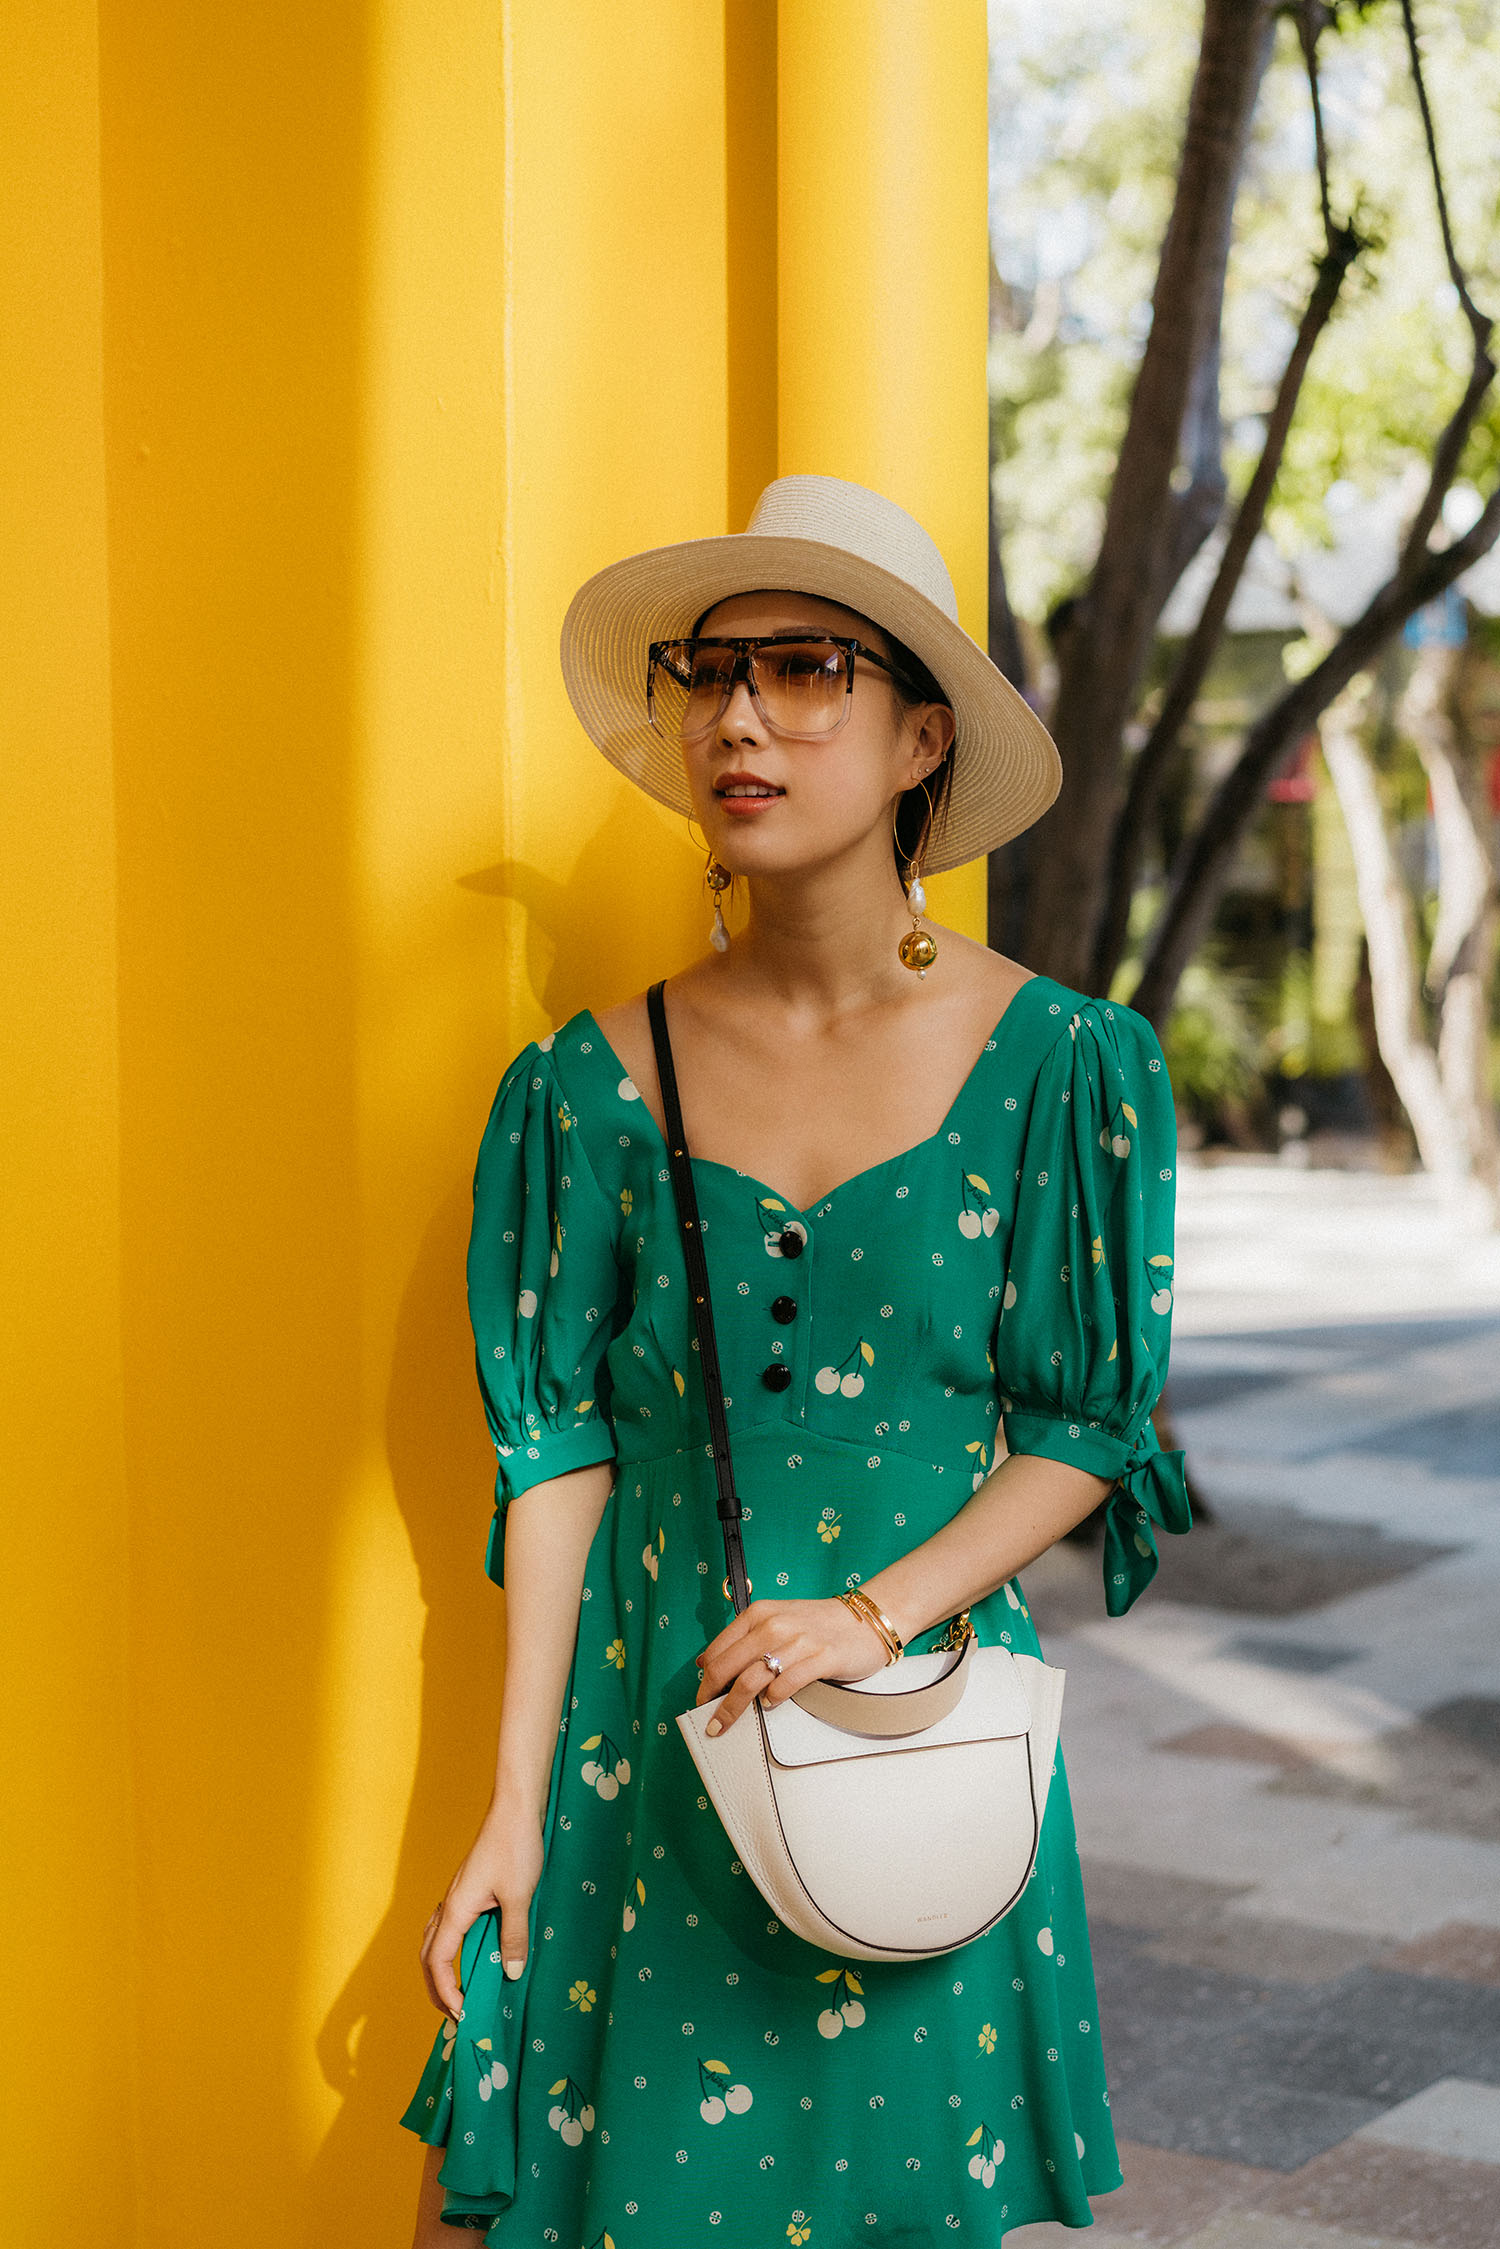 Sretsis Dress ,  Loewe Sunglasses ,  Mounser Earrings , Maison Michel Hat,  Wandler Bag